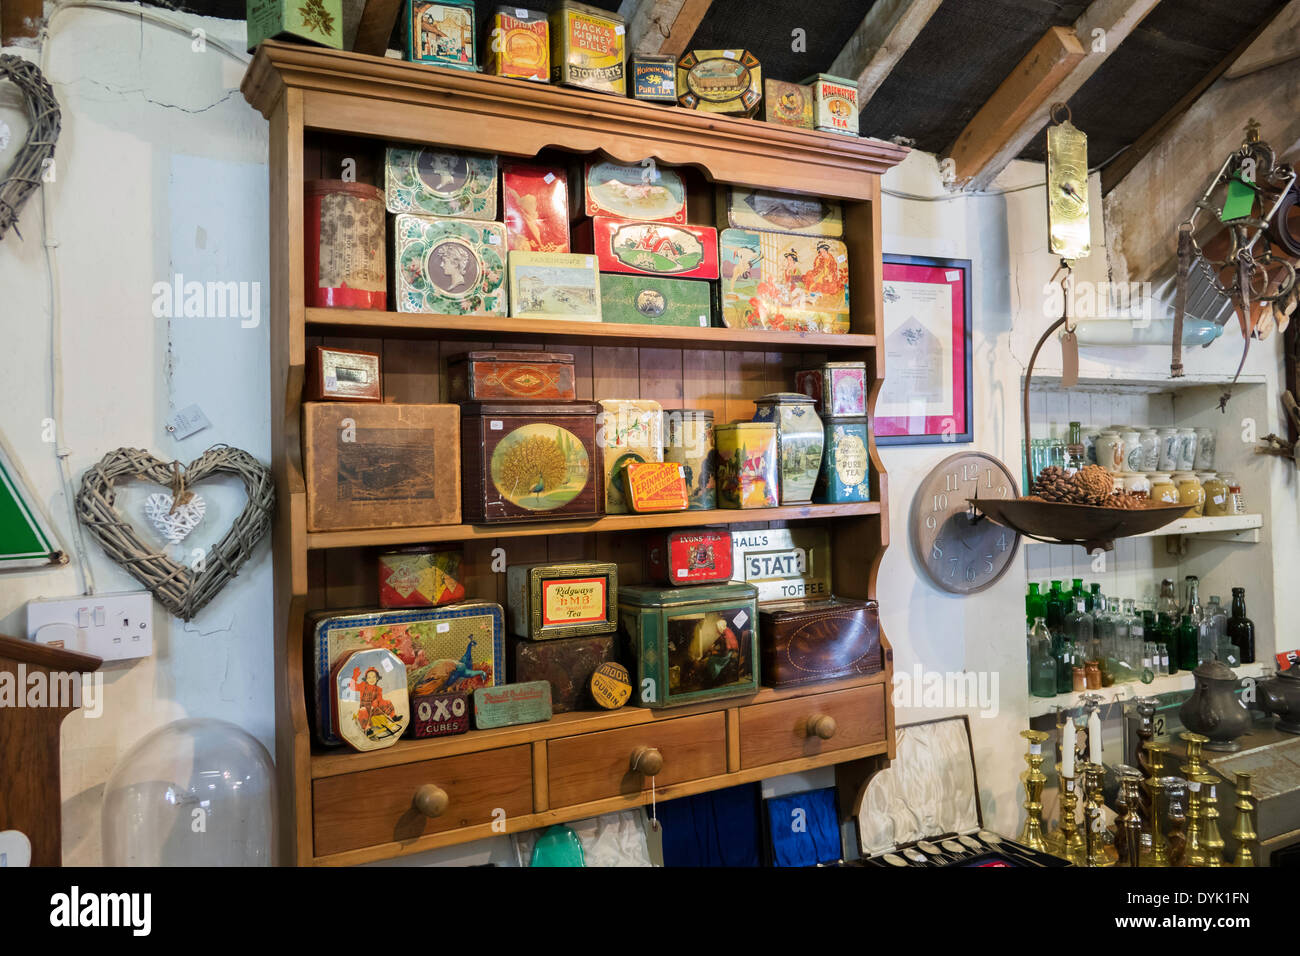 Interior of a rural antique shop with a collection of vintage decorated storage tins - Stock Image